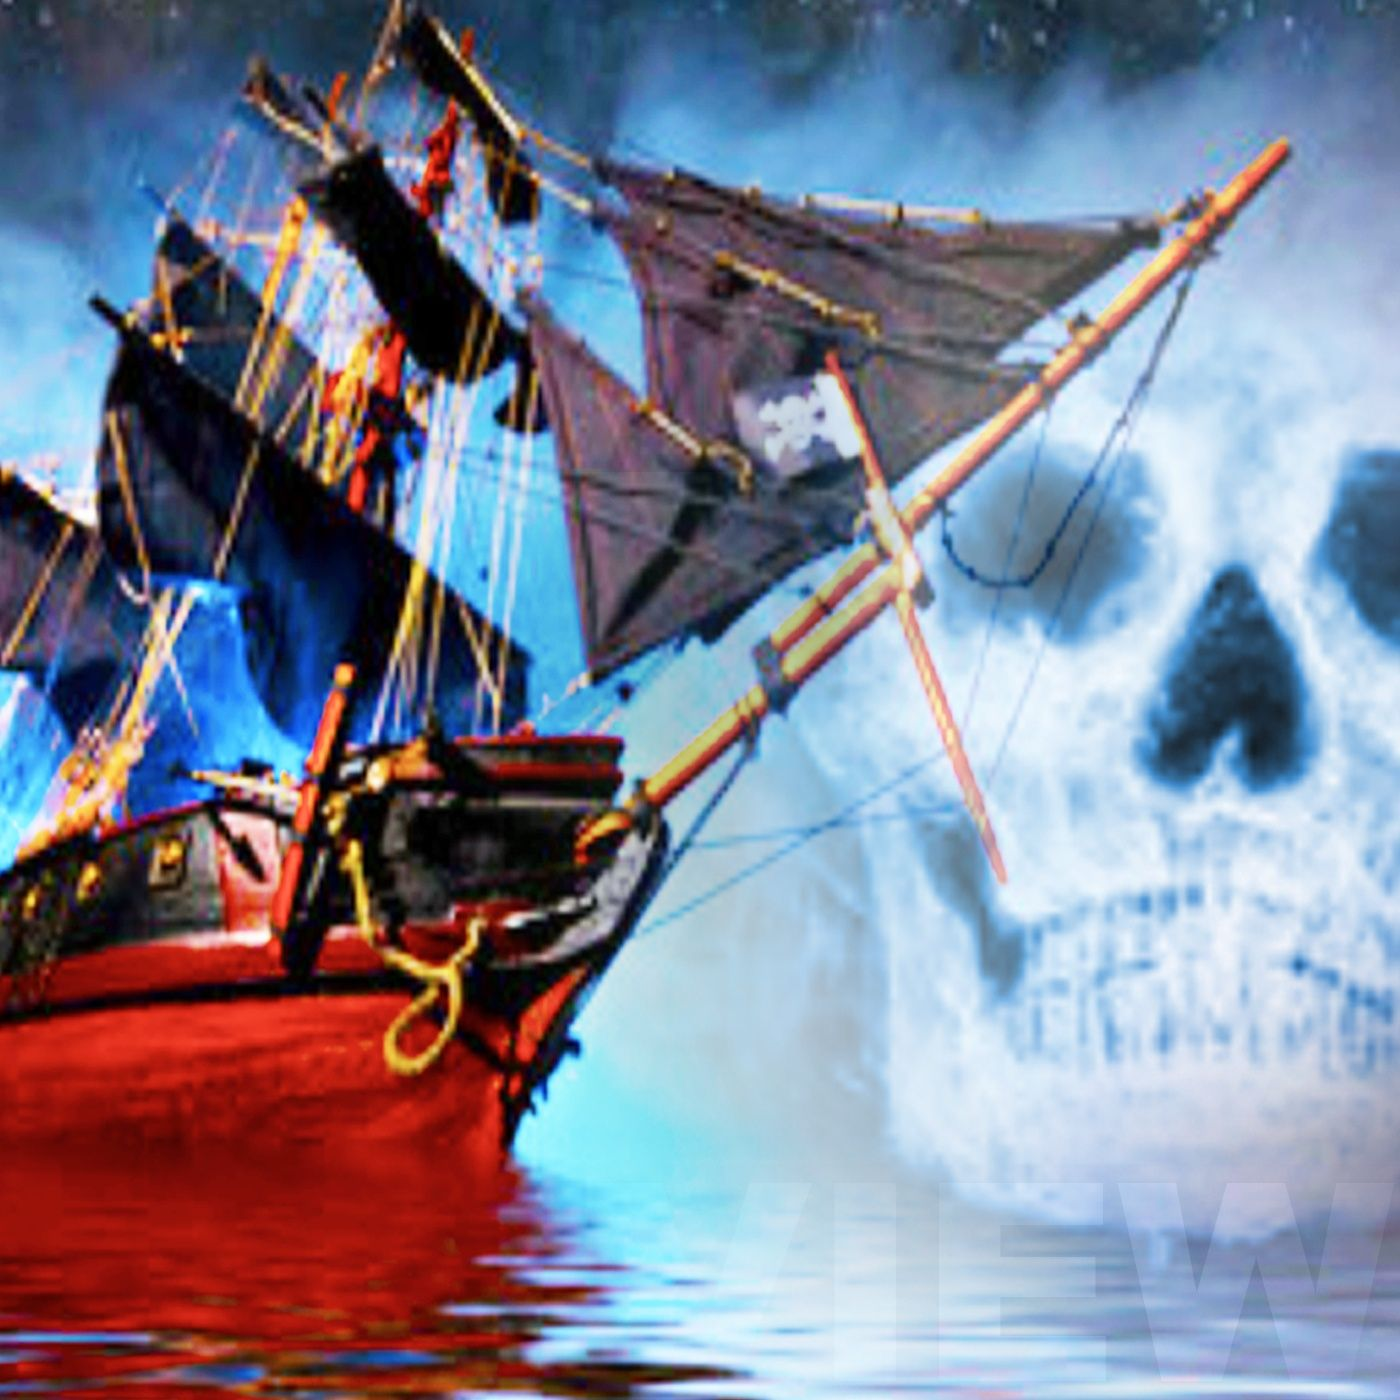 THE GHOST SHIP that was a secret for over a century (FULL STORY)